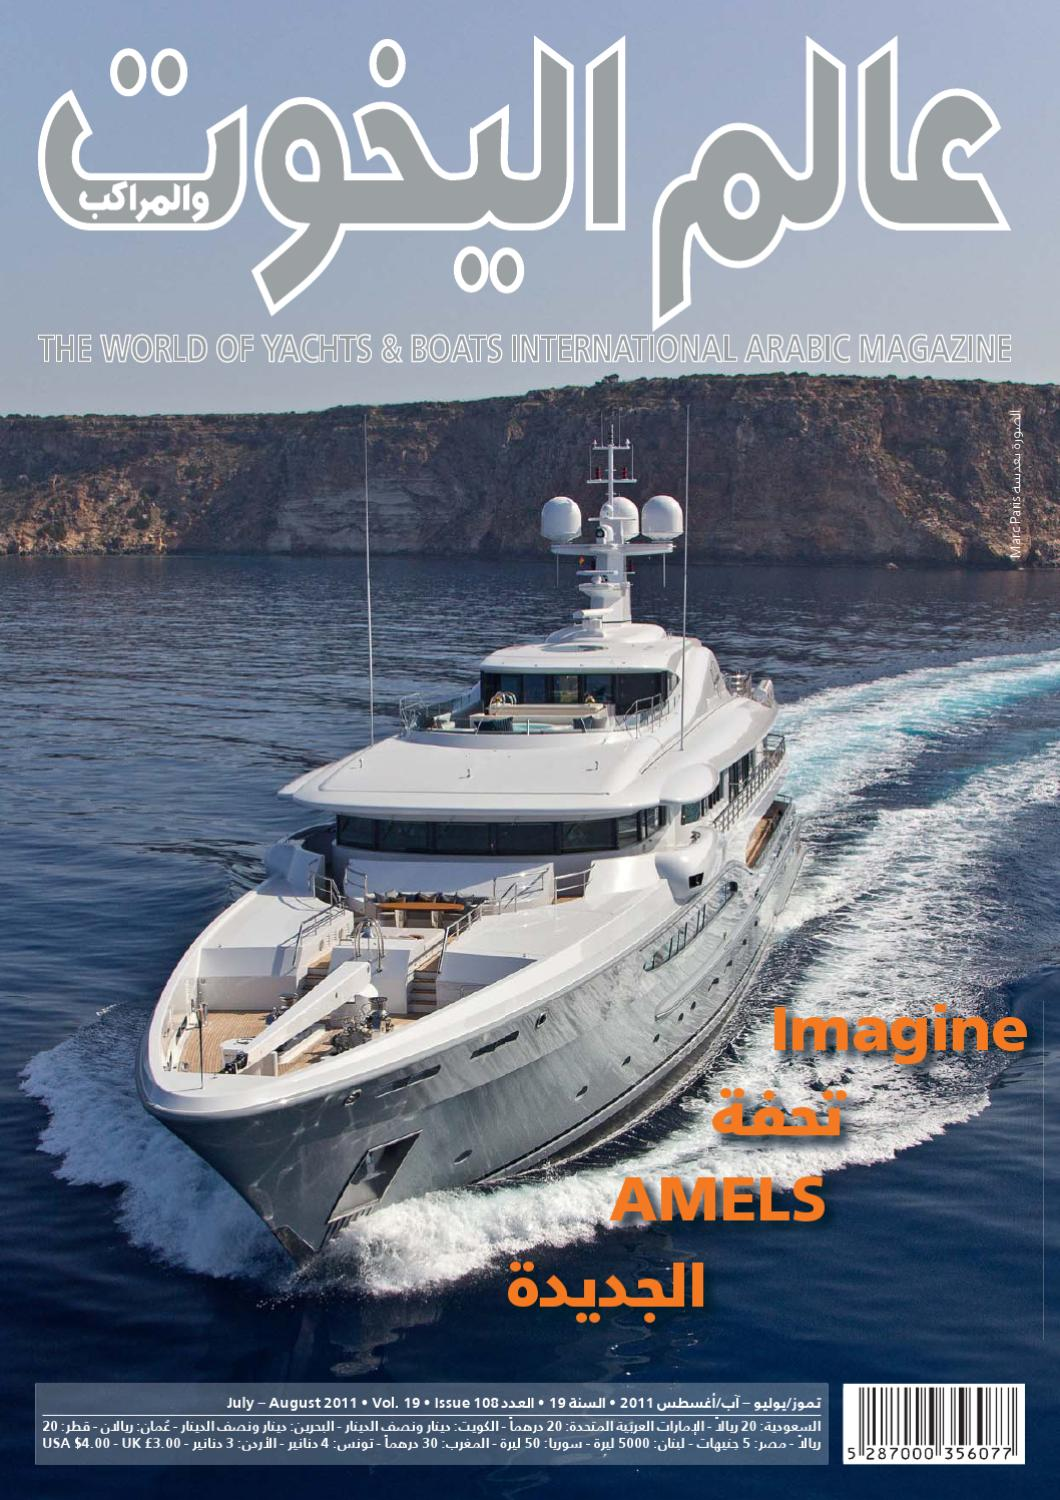 acd36769f WOY - July/August by The World of Yachts & Boats - issuu